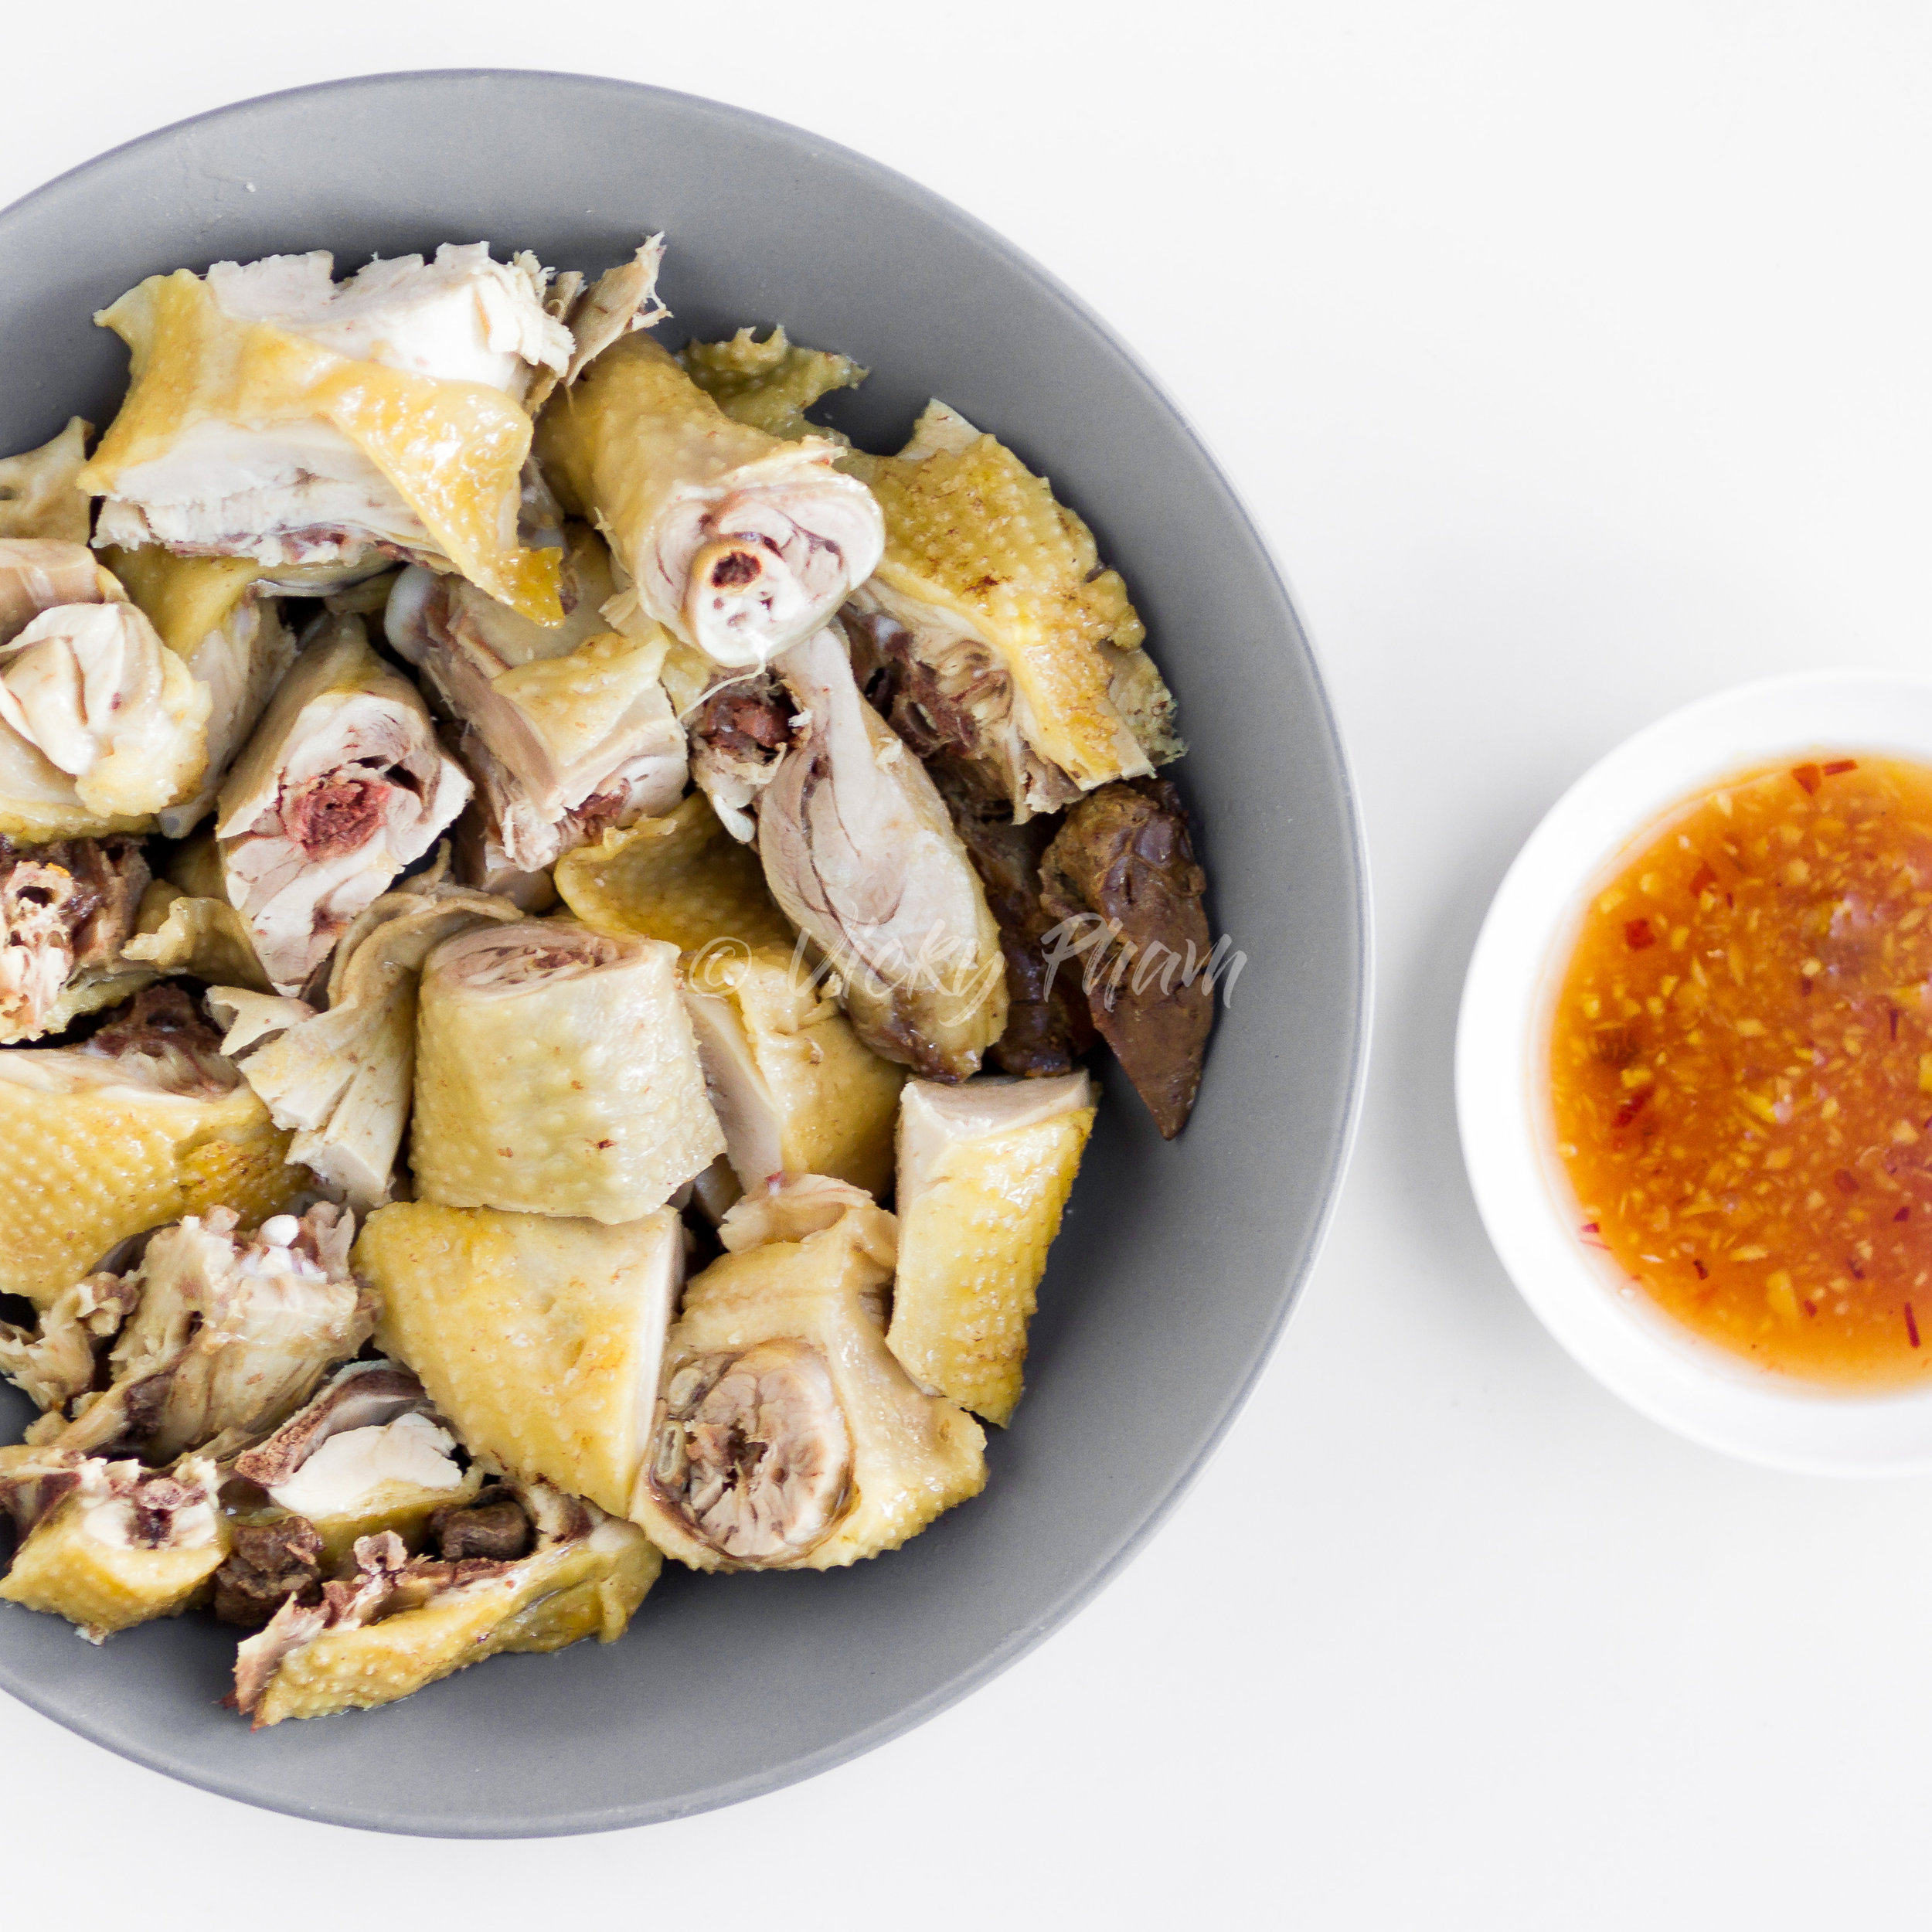 Poached Chicken with Ginger Fish Sauce